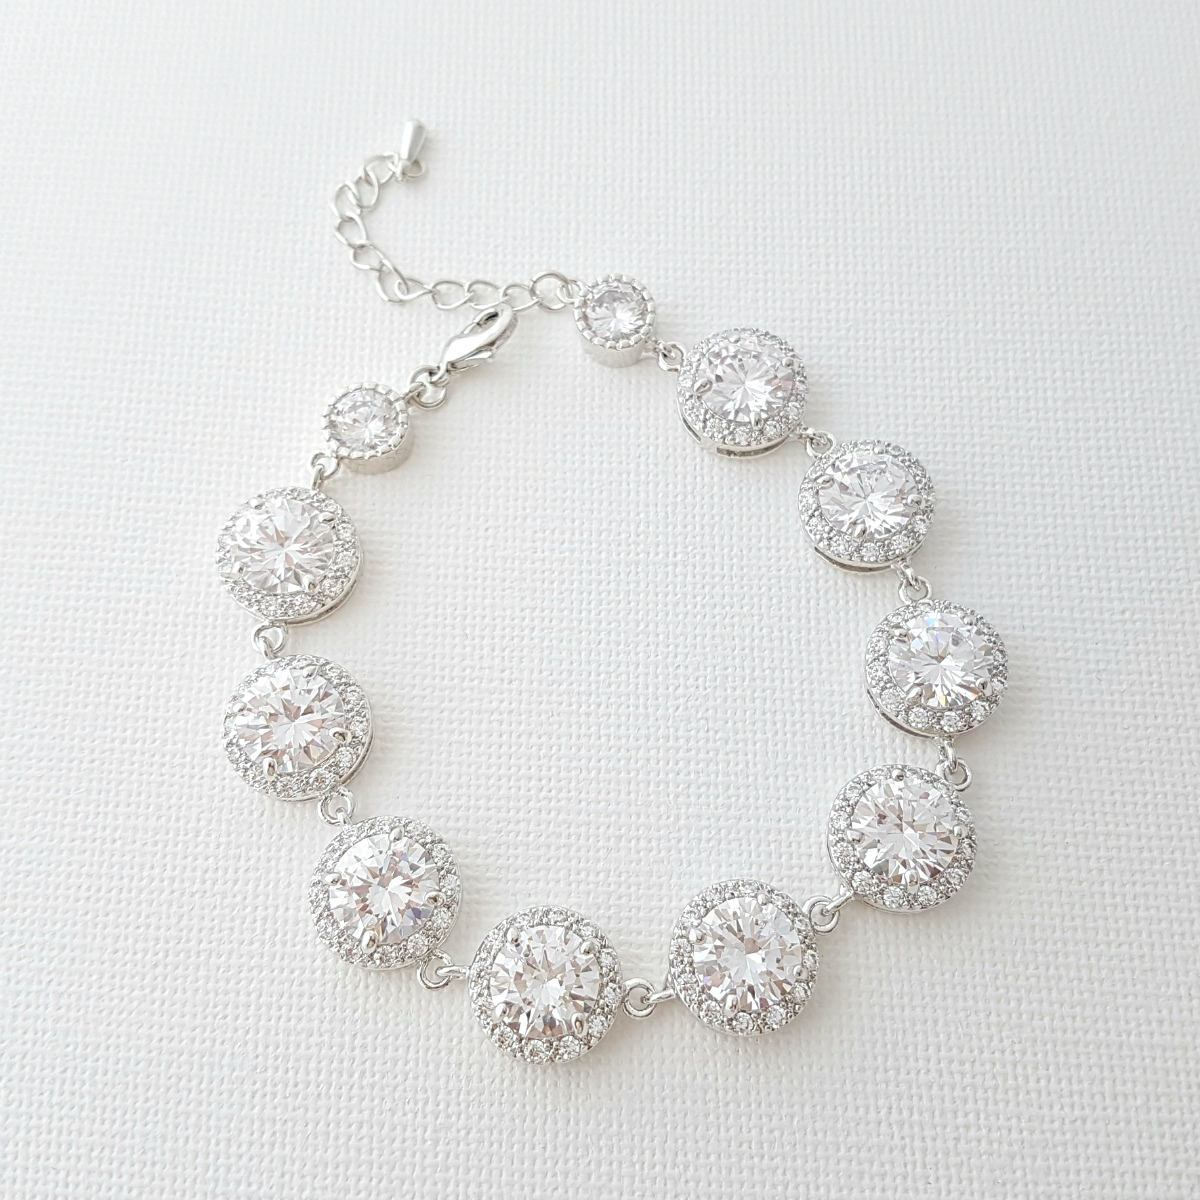 Crystal Bridal Bracelet, Wedding Jewelry, Cubic Zirconia, CZ Bracelet, Crystal Wedding Bracelet, Bridal Jewelry, Evita